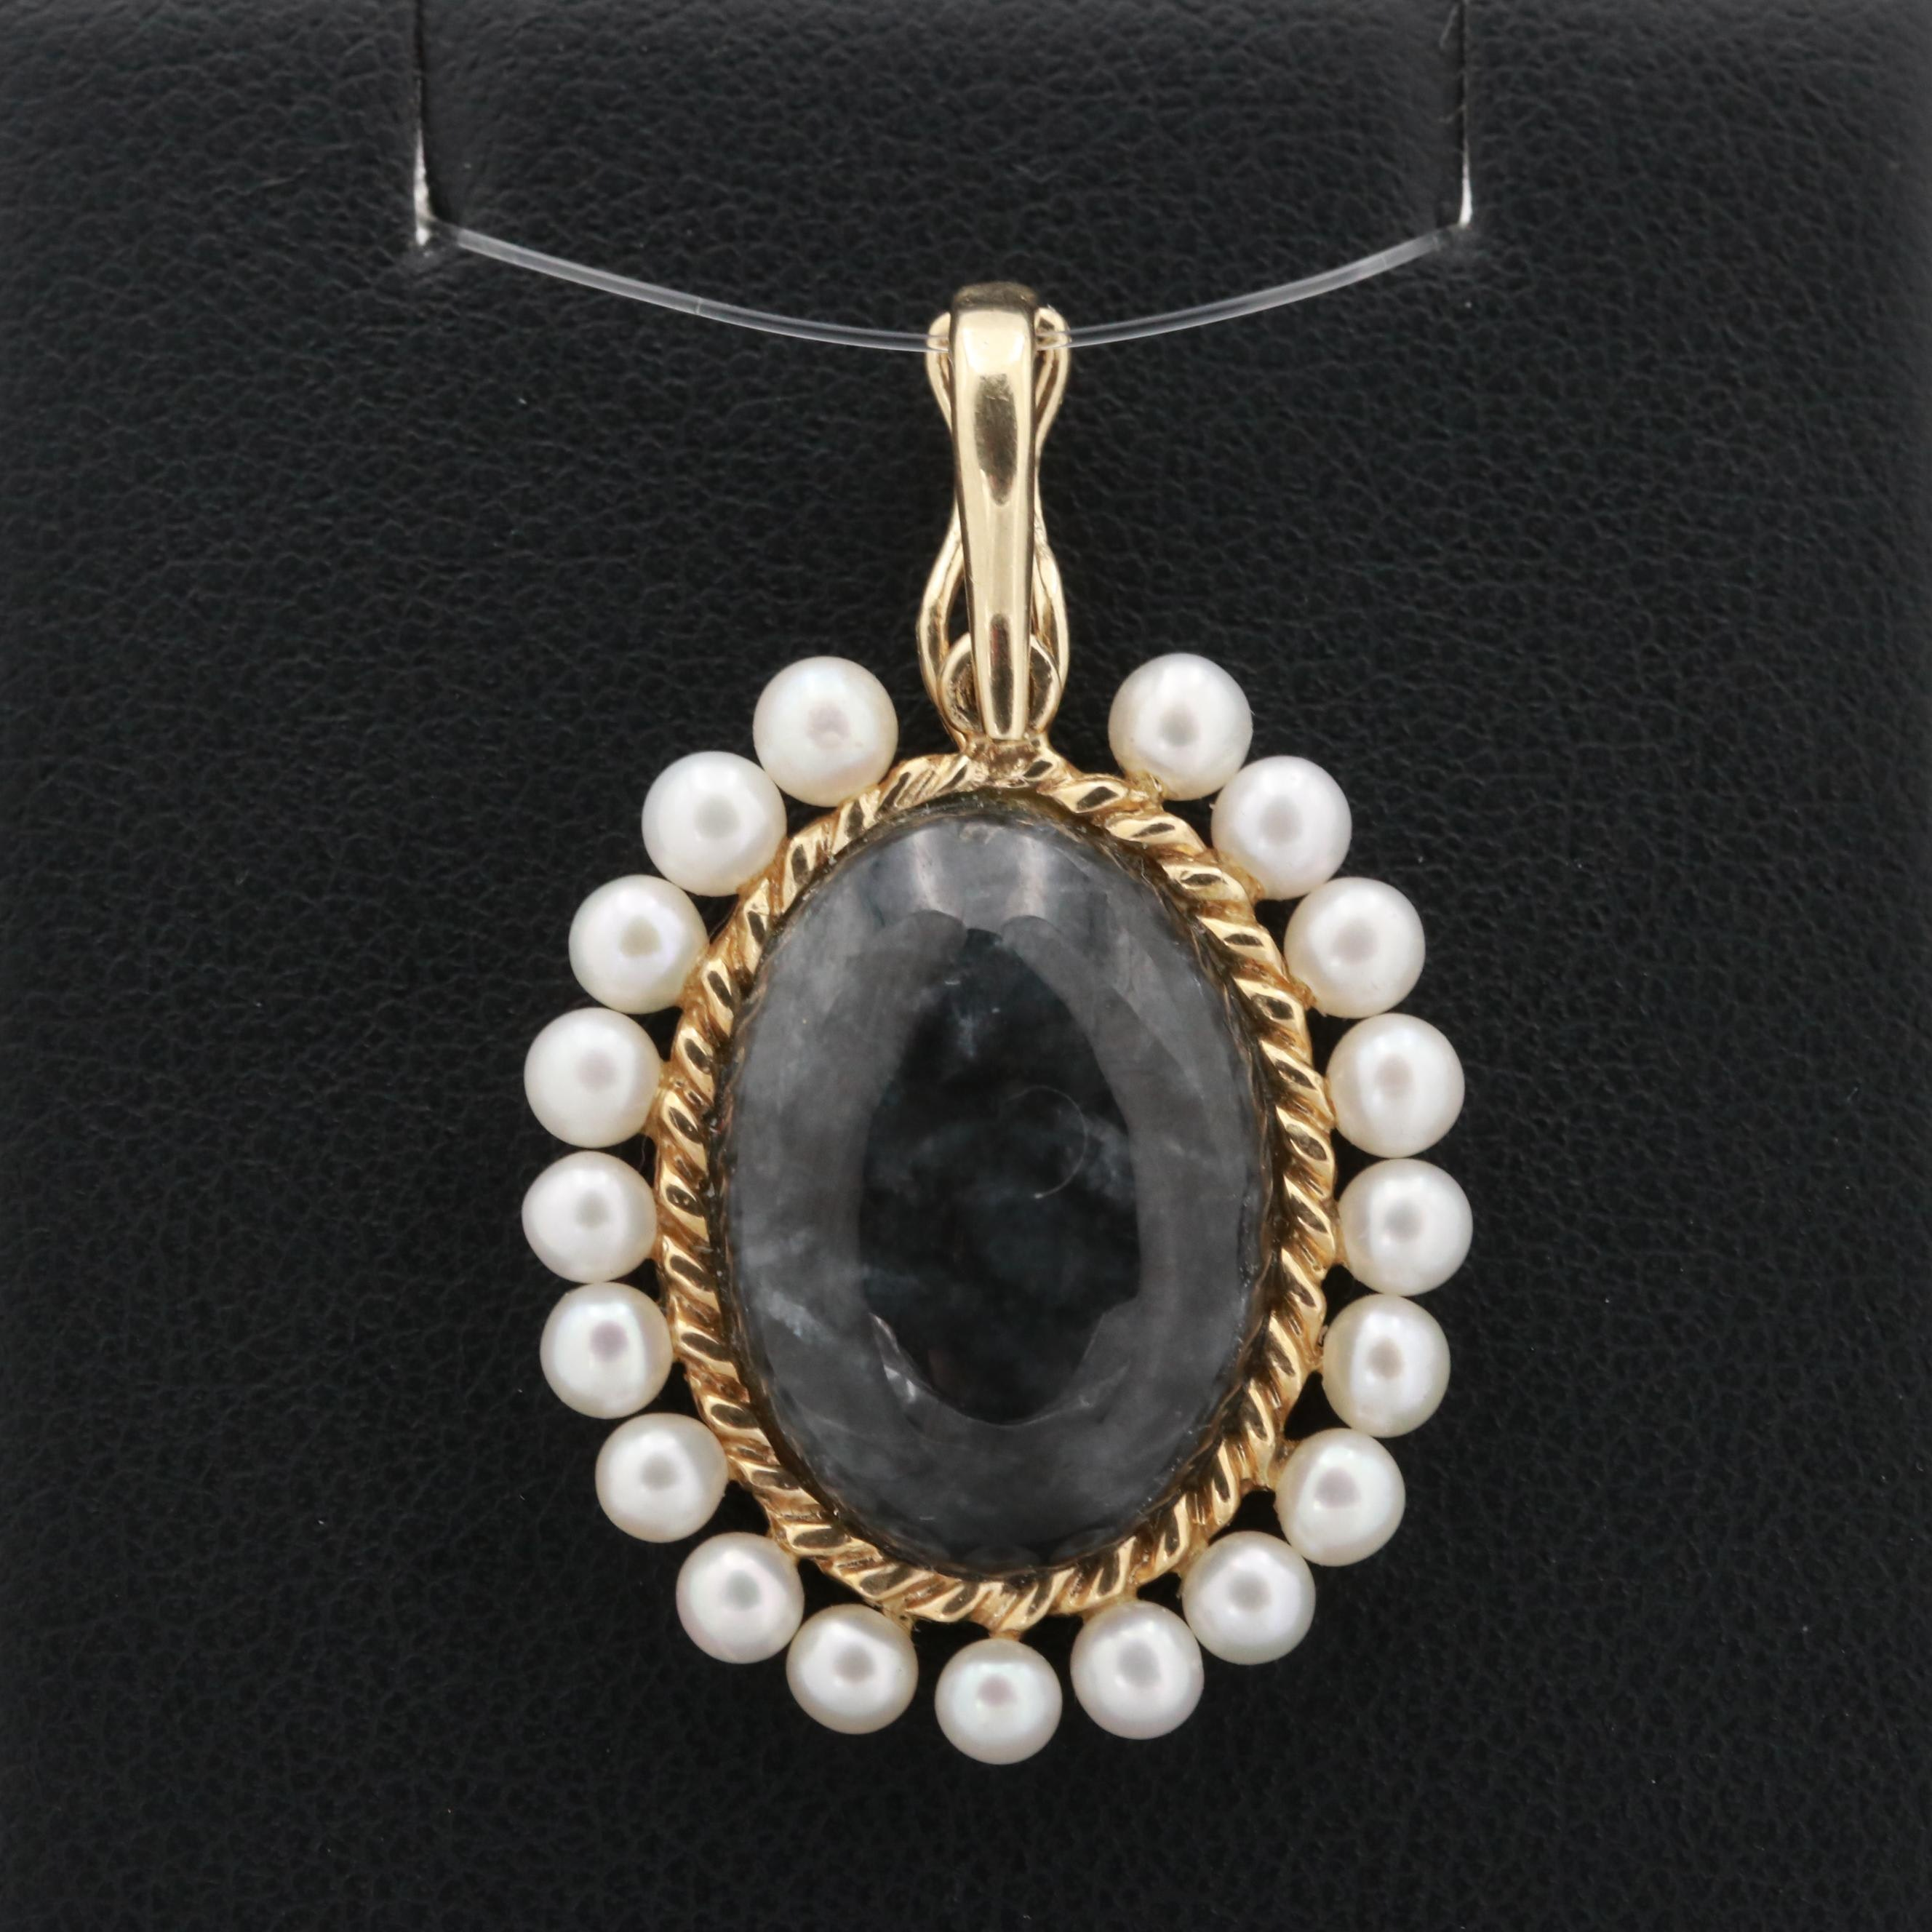 14K Yellow Gold Cultured Pearl and Jadeite Enhancer Pendant